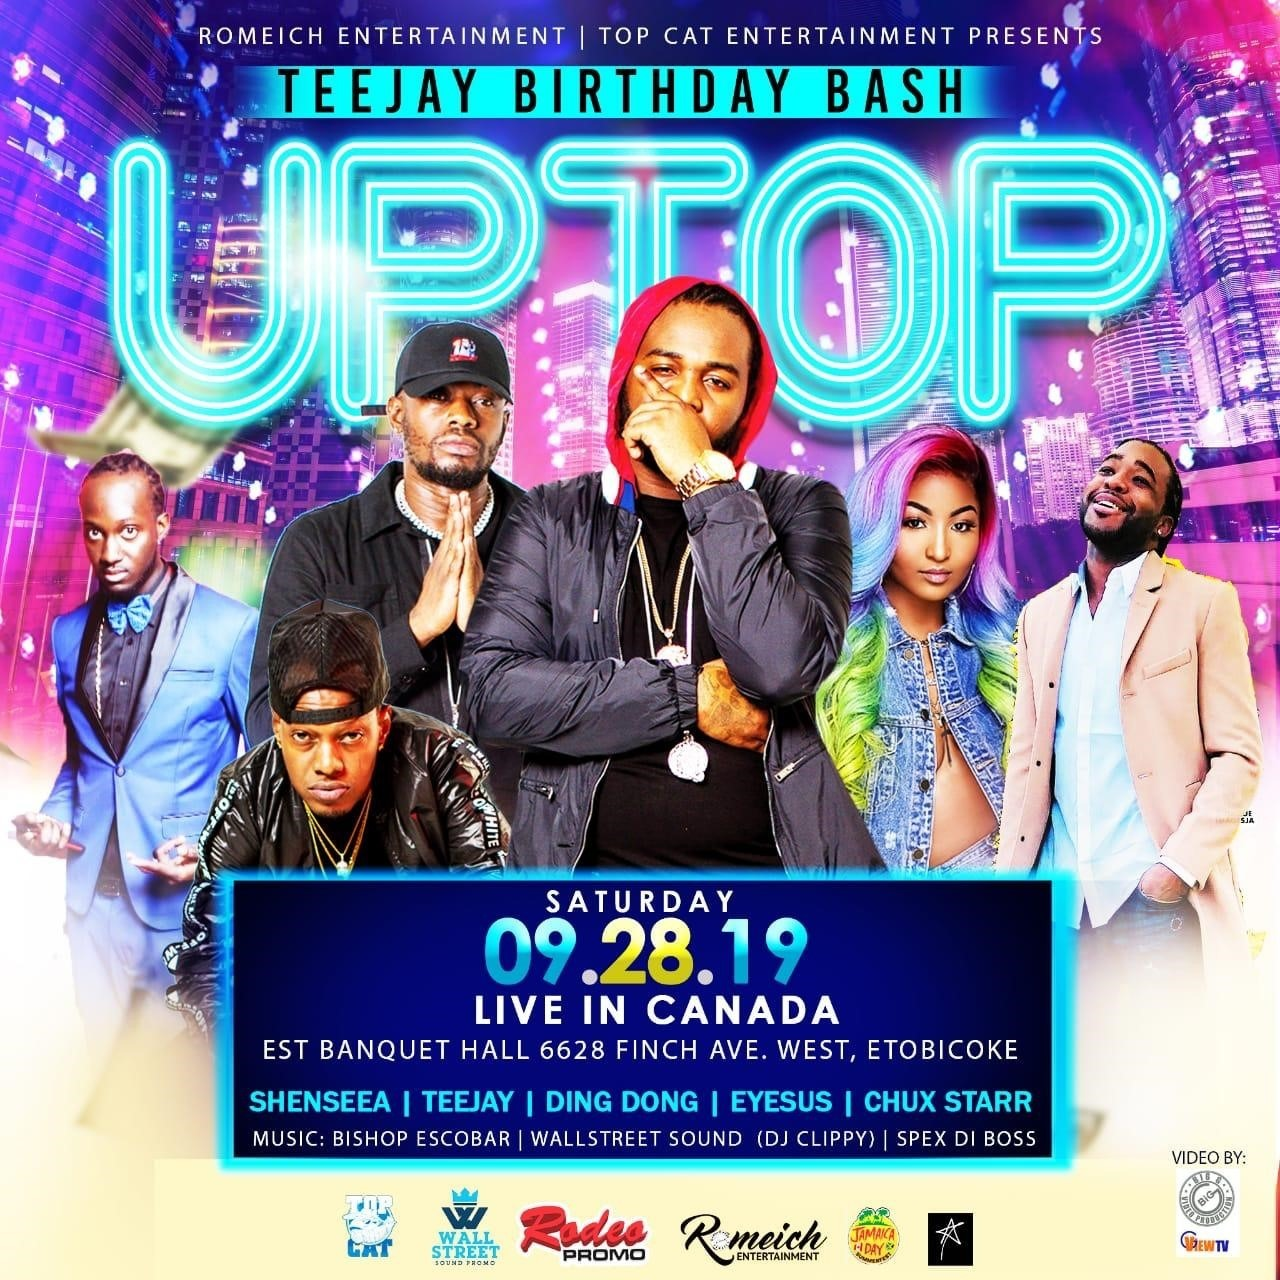 TEEJAY Birthday Bash - UPTOP